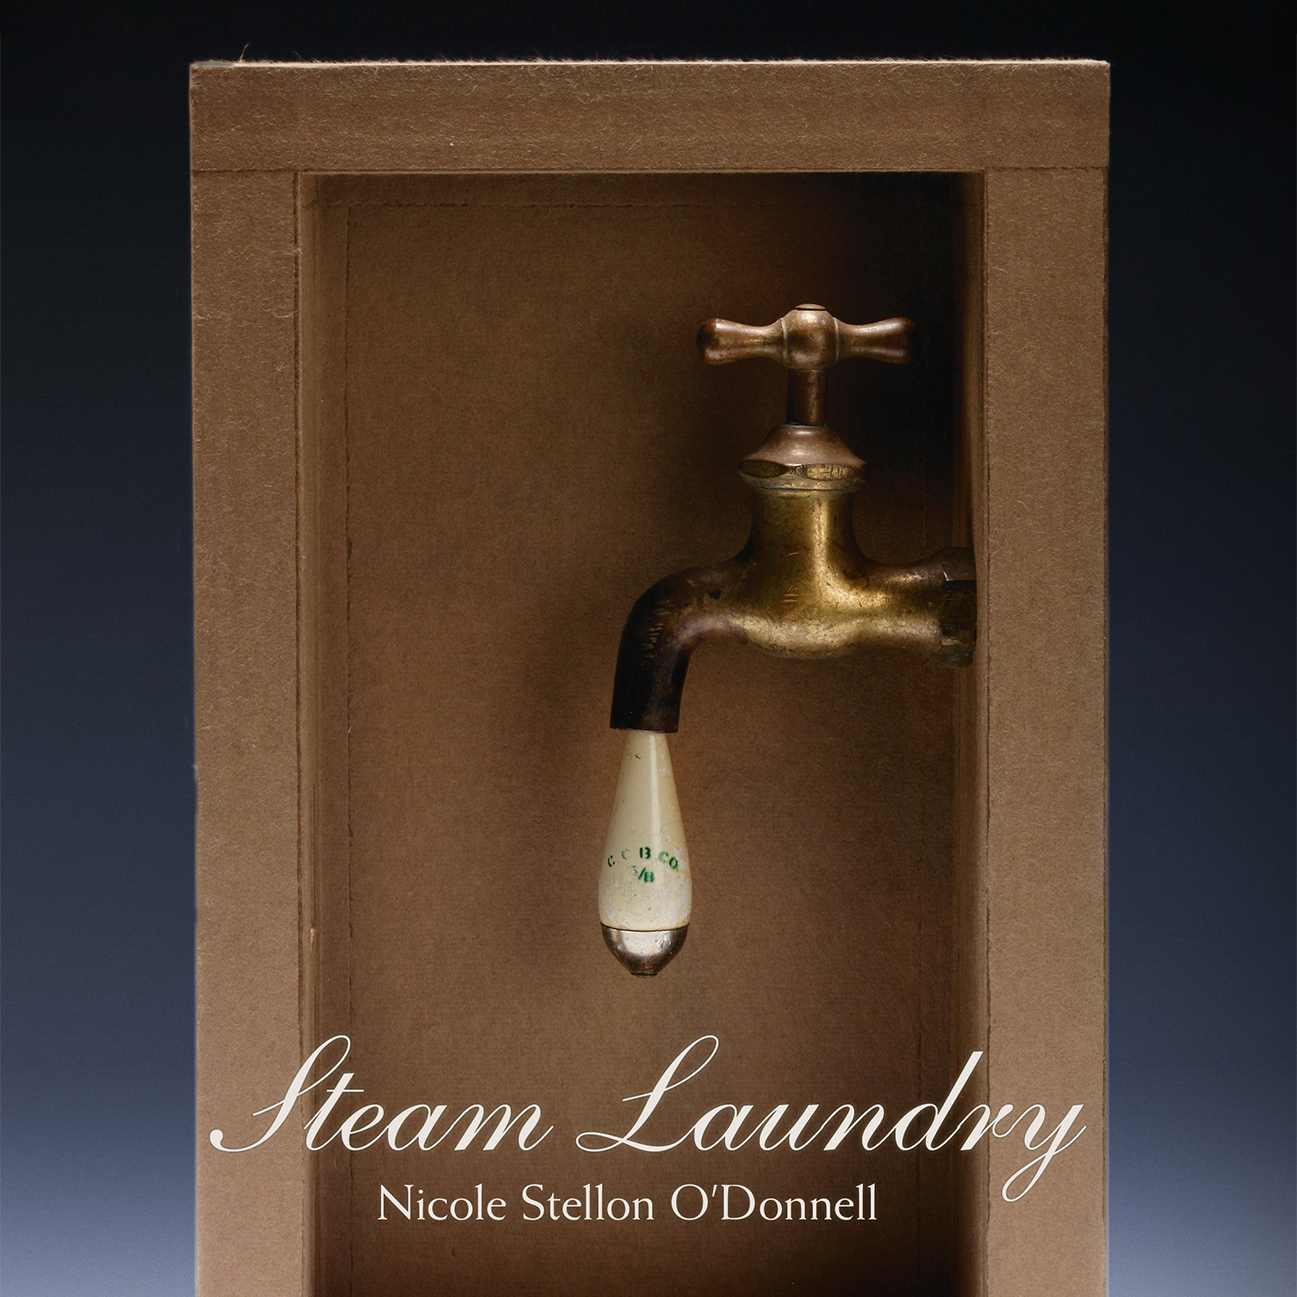 An image of the cover of Nicole Stellon O'Donnell's Steam Laundry